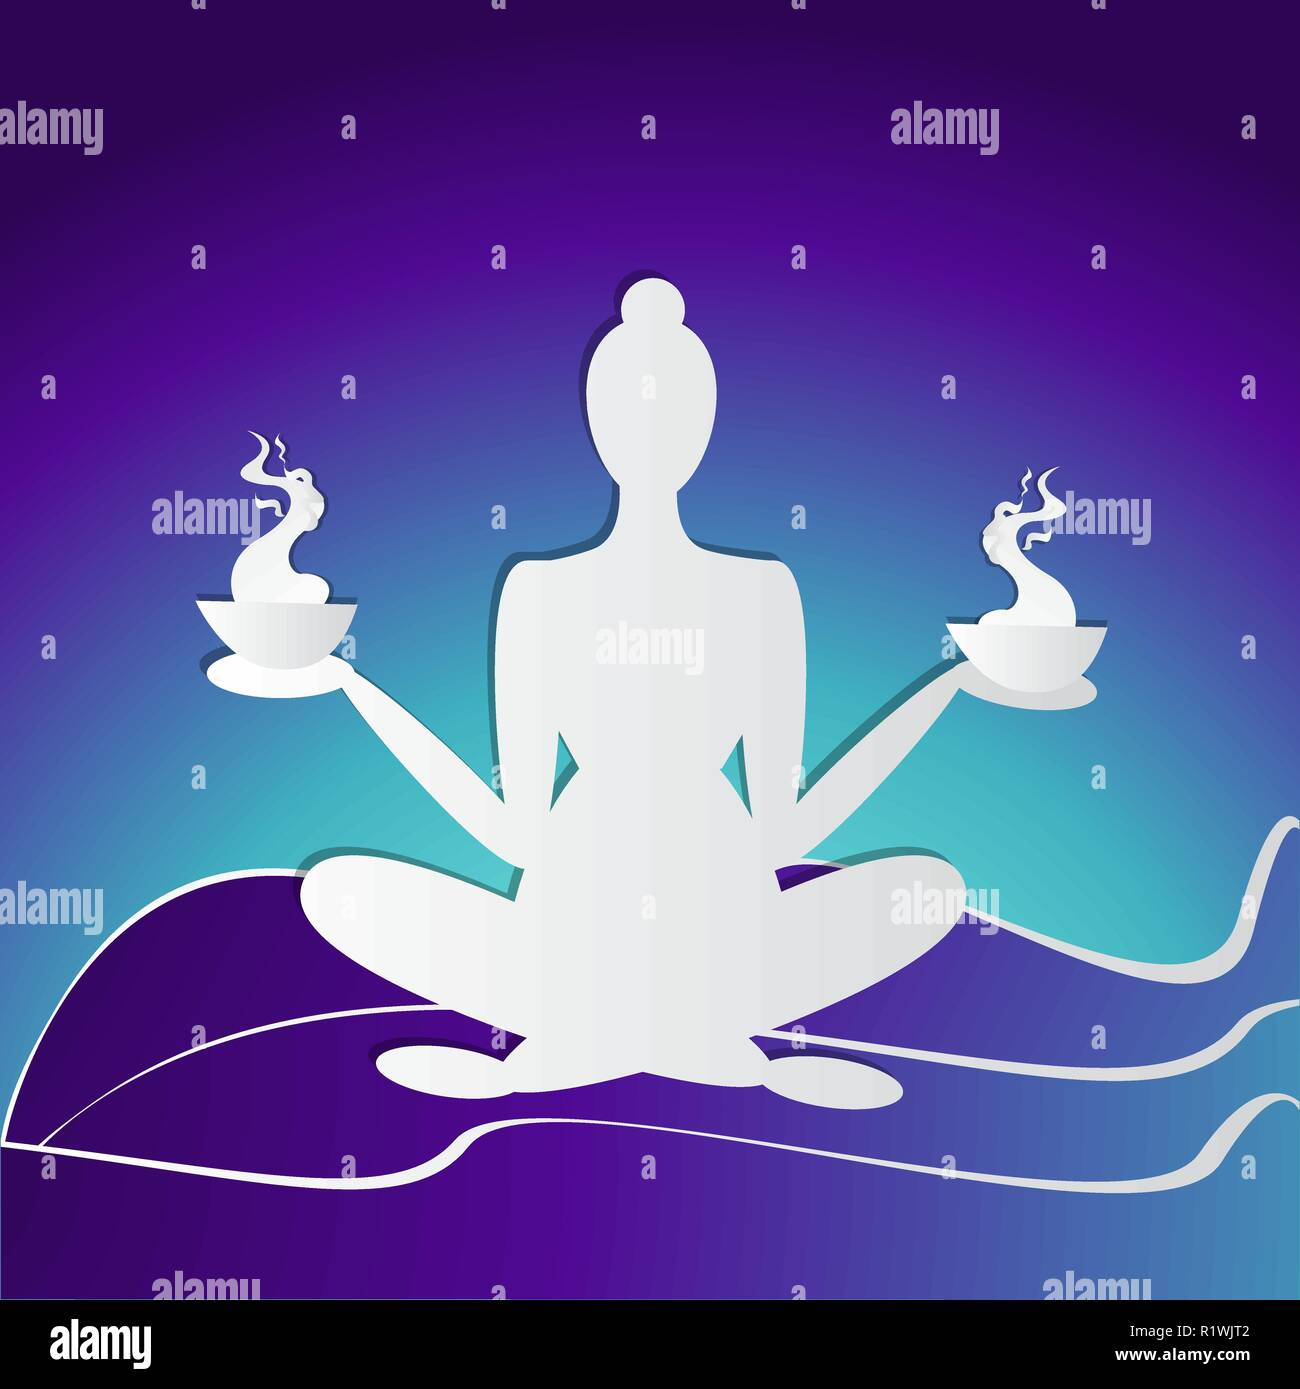 Girl Silhouette Meditate Yoga Pose Logo For Spa Featured Background Neon Colors And Paper Crafted Woman For Web And Print Vector Illustration In Stock Vector Image Art Alamy